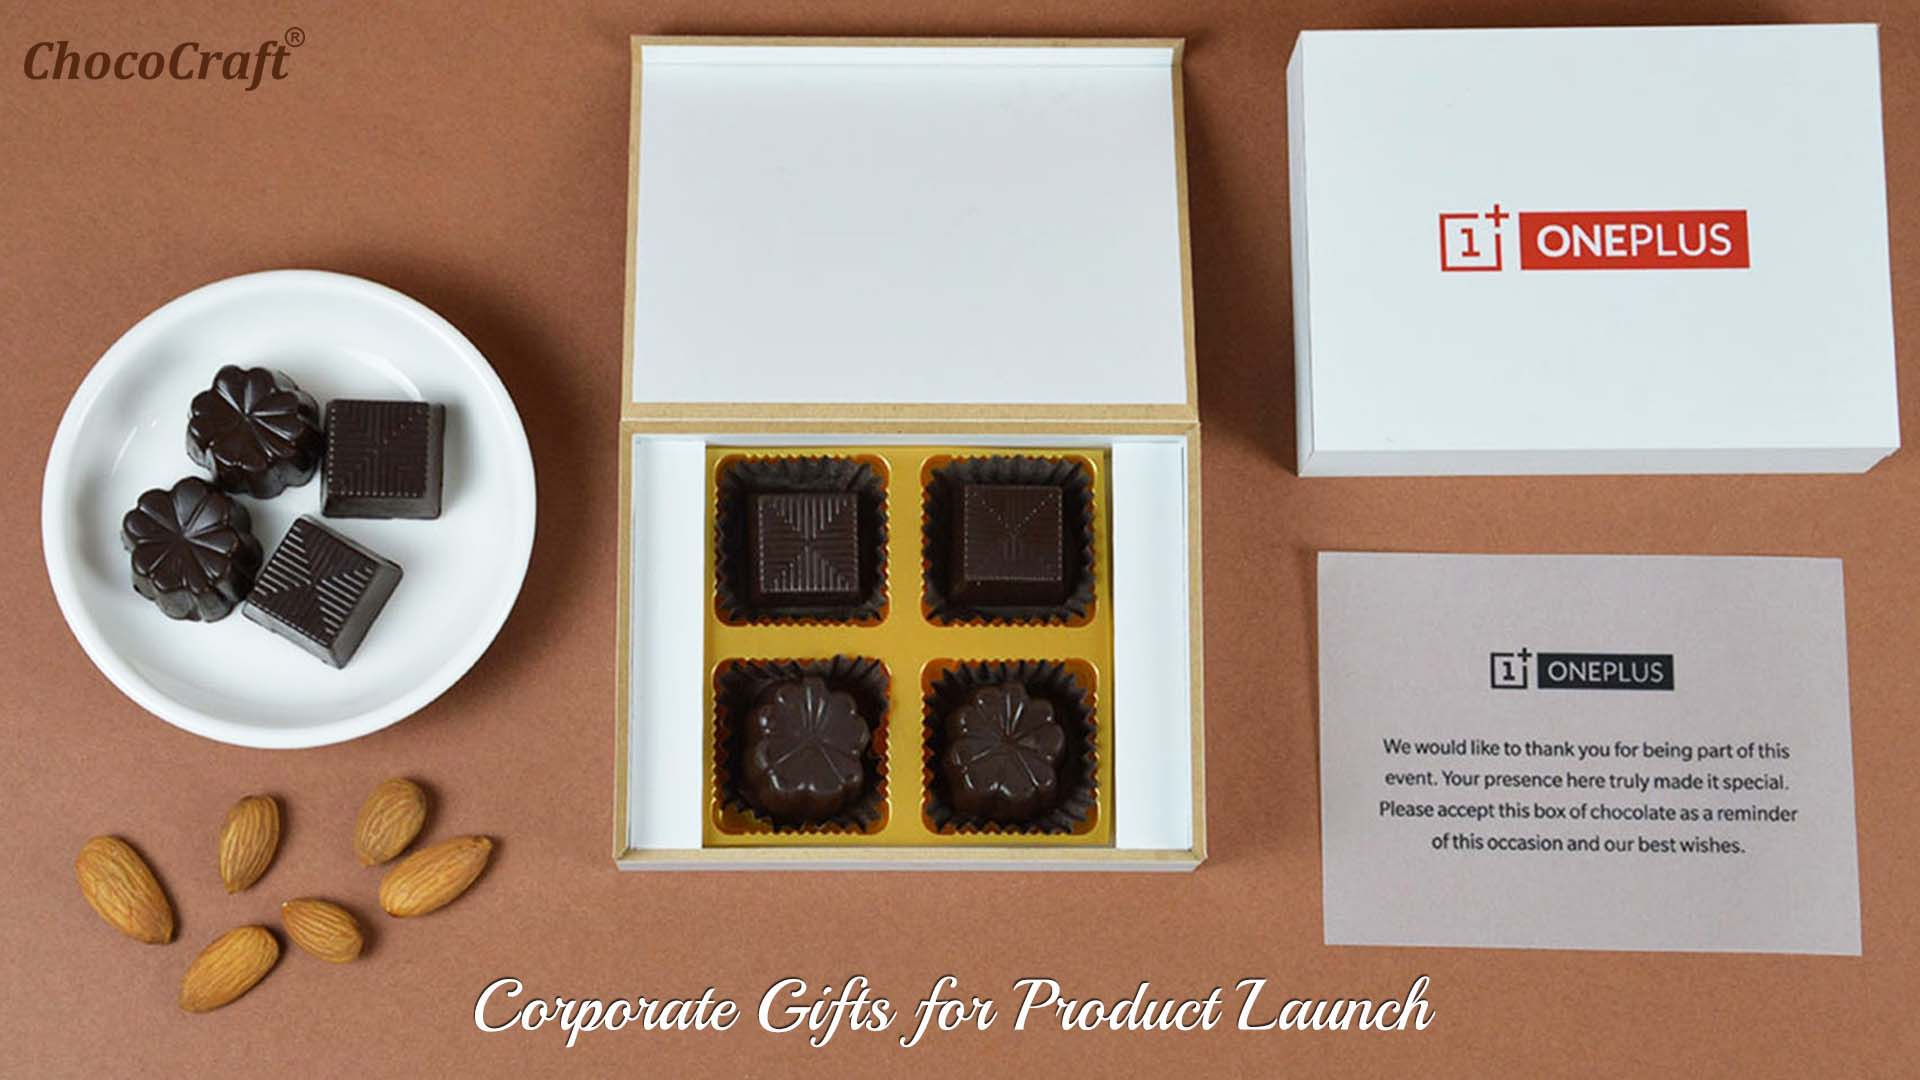 Best Corporate Gifts | Unique Corporate Gifts Online | ChocoCraft